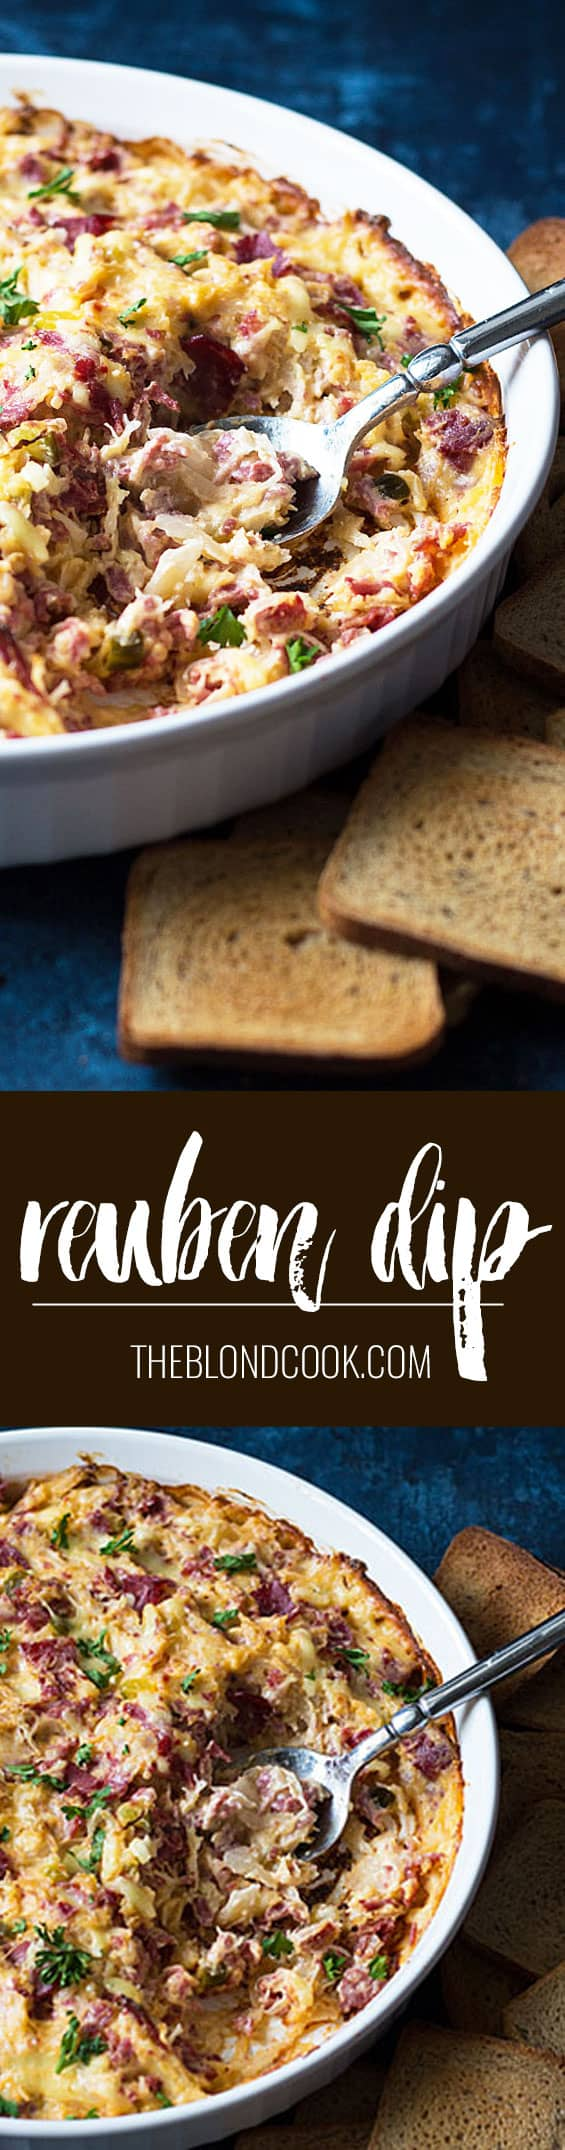 Reuben Dip - All of your favorite ingredients in a Reuben sandwich in a creamy and cheesy hot dip!